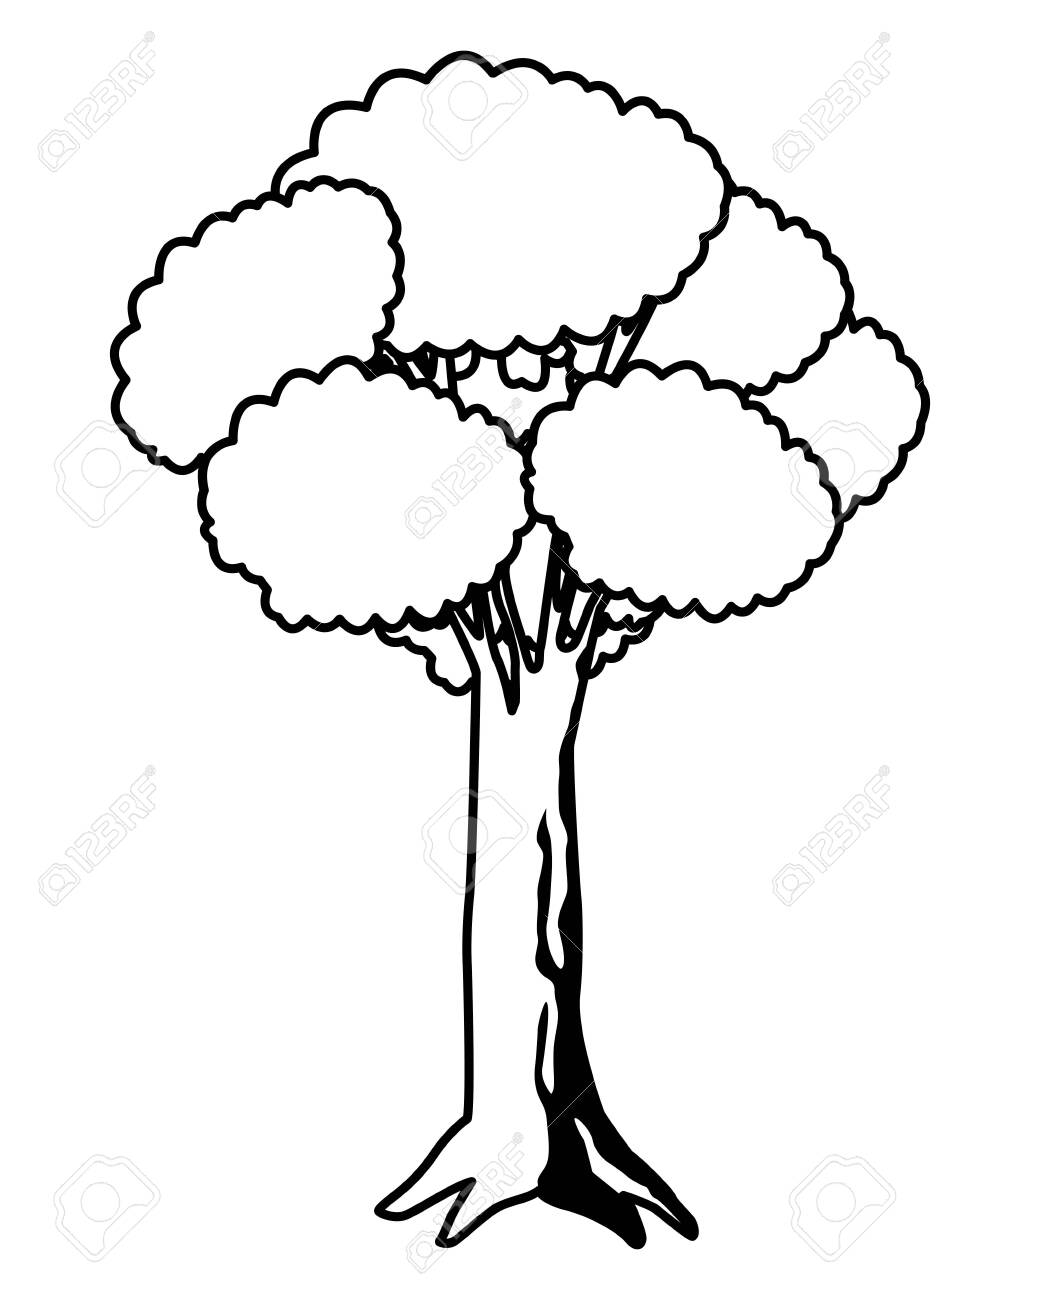 Leafy And Black And White Tree Icon With Purple Foliange Isolated Royalty Free Cliparts Vectors And Stock Illustration Image 127256706 Pngtree offers over 9 black and white tree png and vector images, as well as transparant. leafy and black and white tree icon with purple foliange isolated